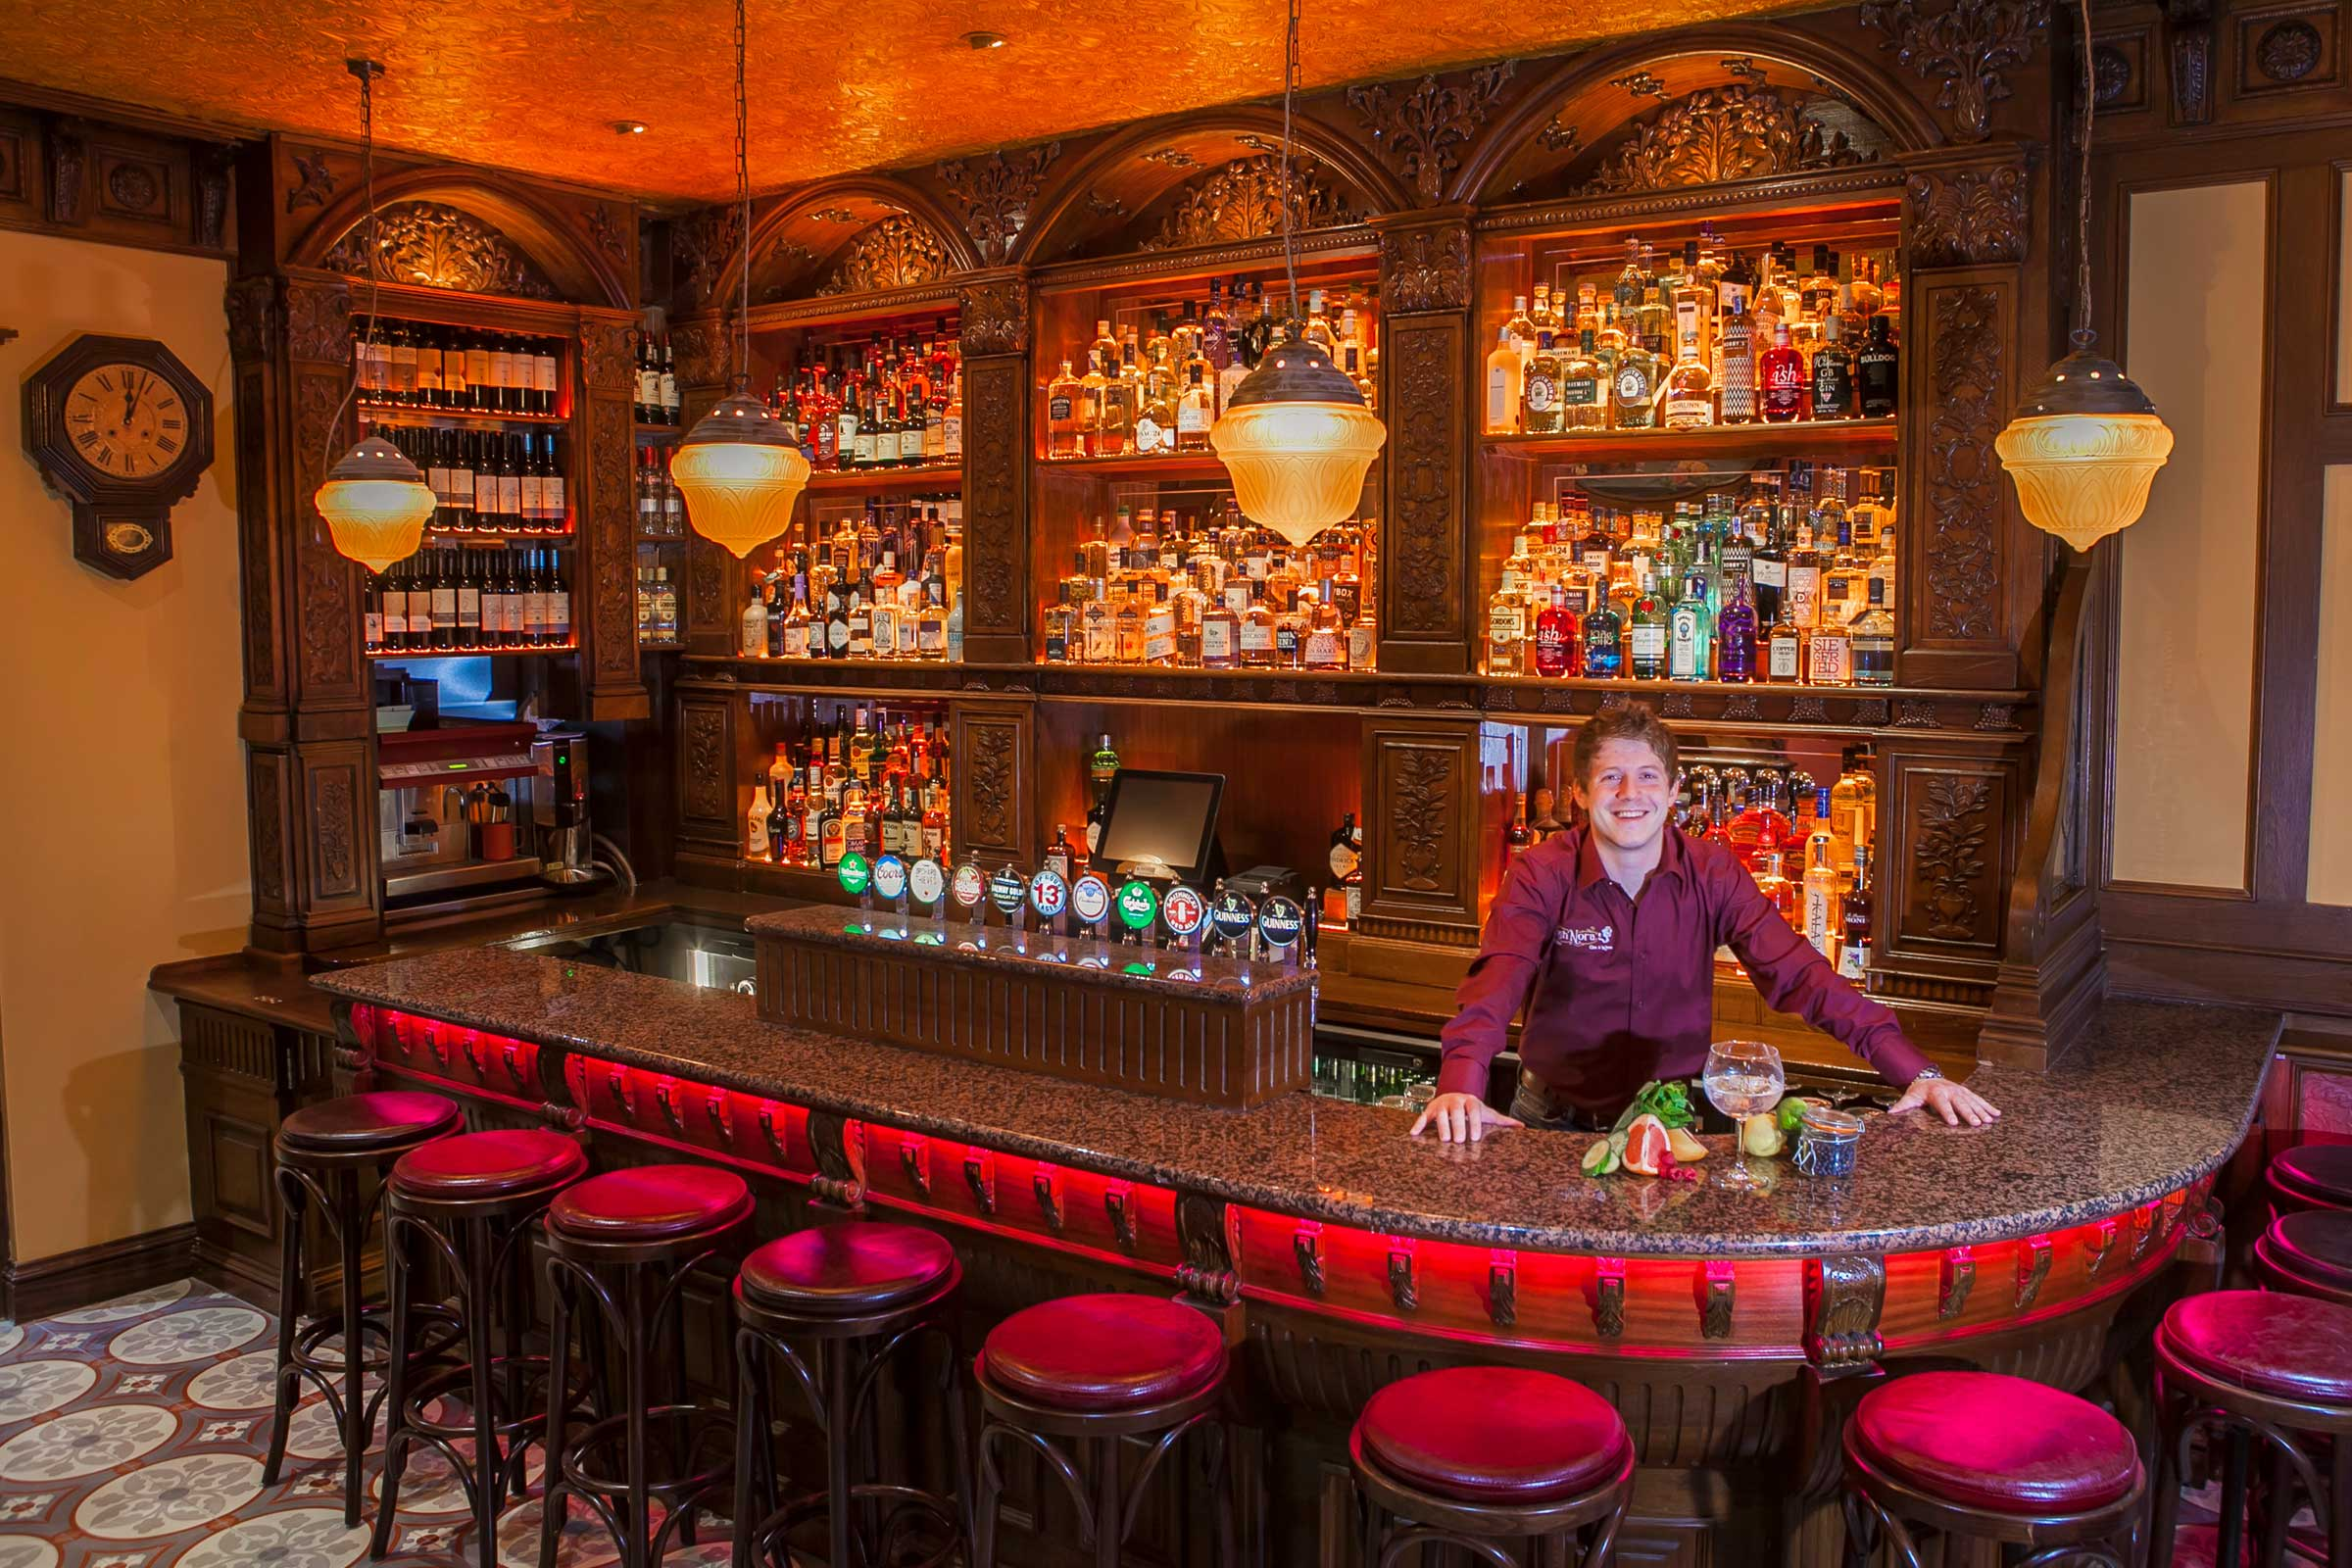 Tigh nora galways first gin bar the front door sonnys bar with over 100 different types of gin tigh nora has just opened its doors as galways first gin bar and is a haven for gin drinkers rubansaba